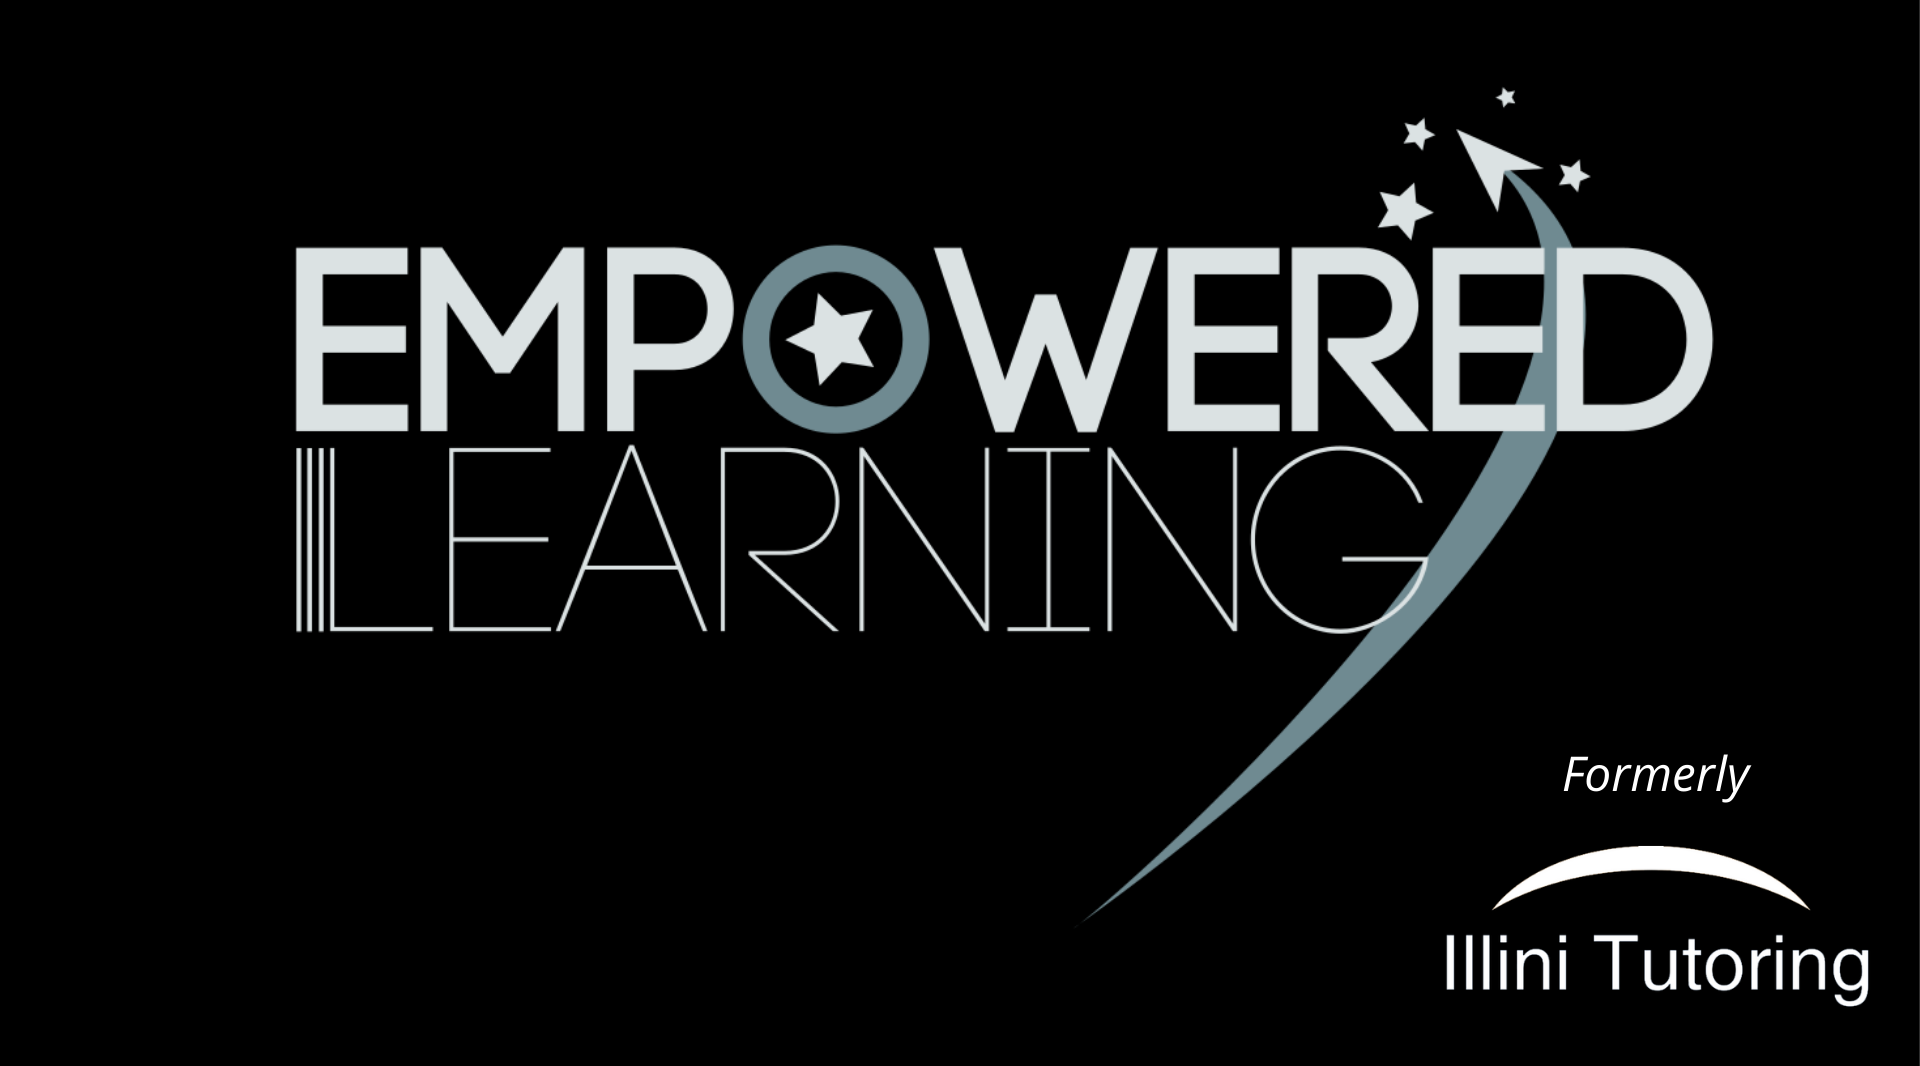 Logo of Empowered Learning, formerly Illini Tutoring